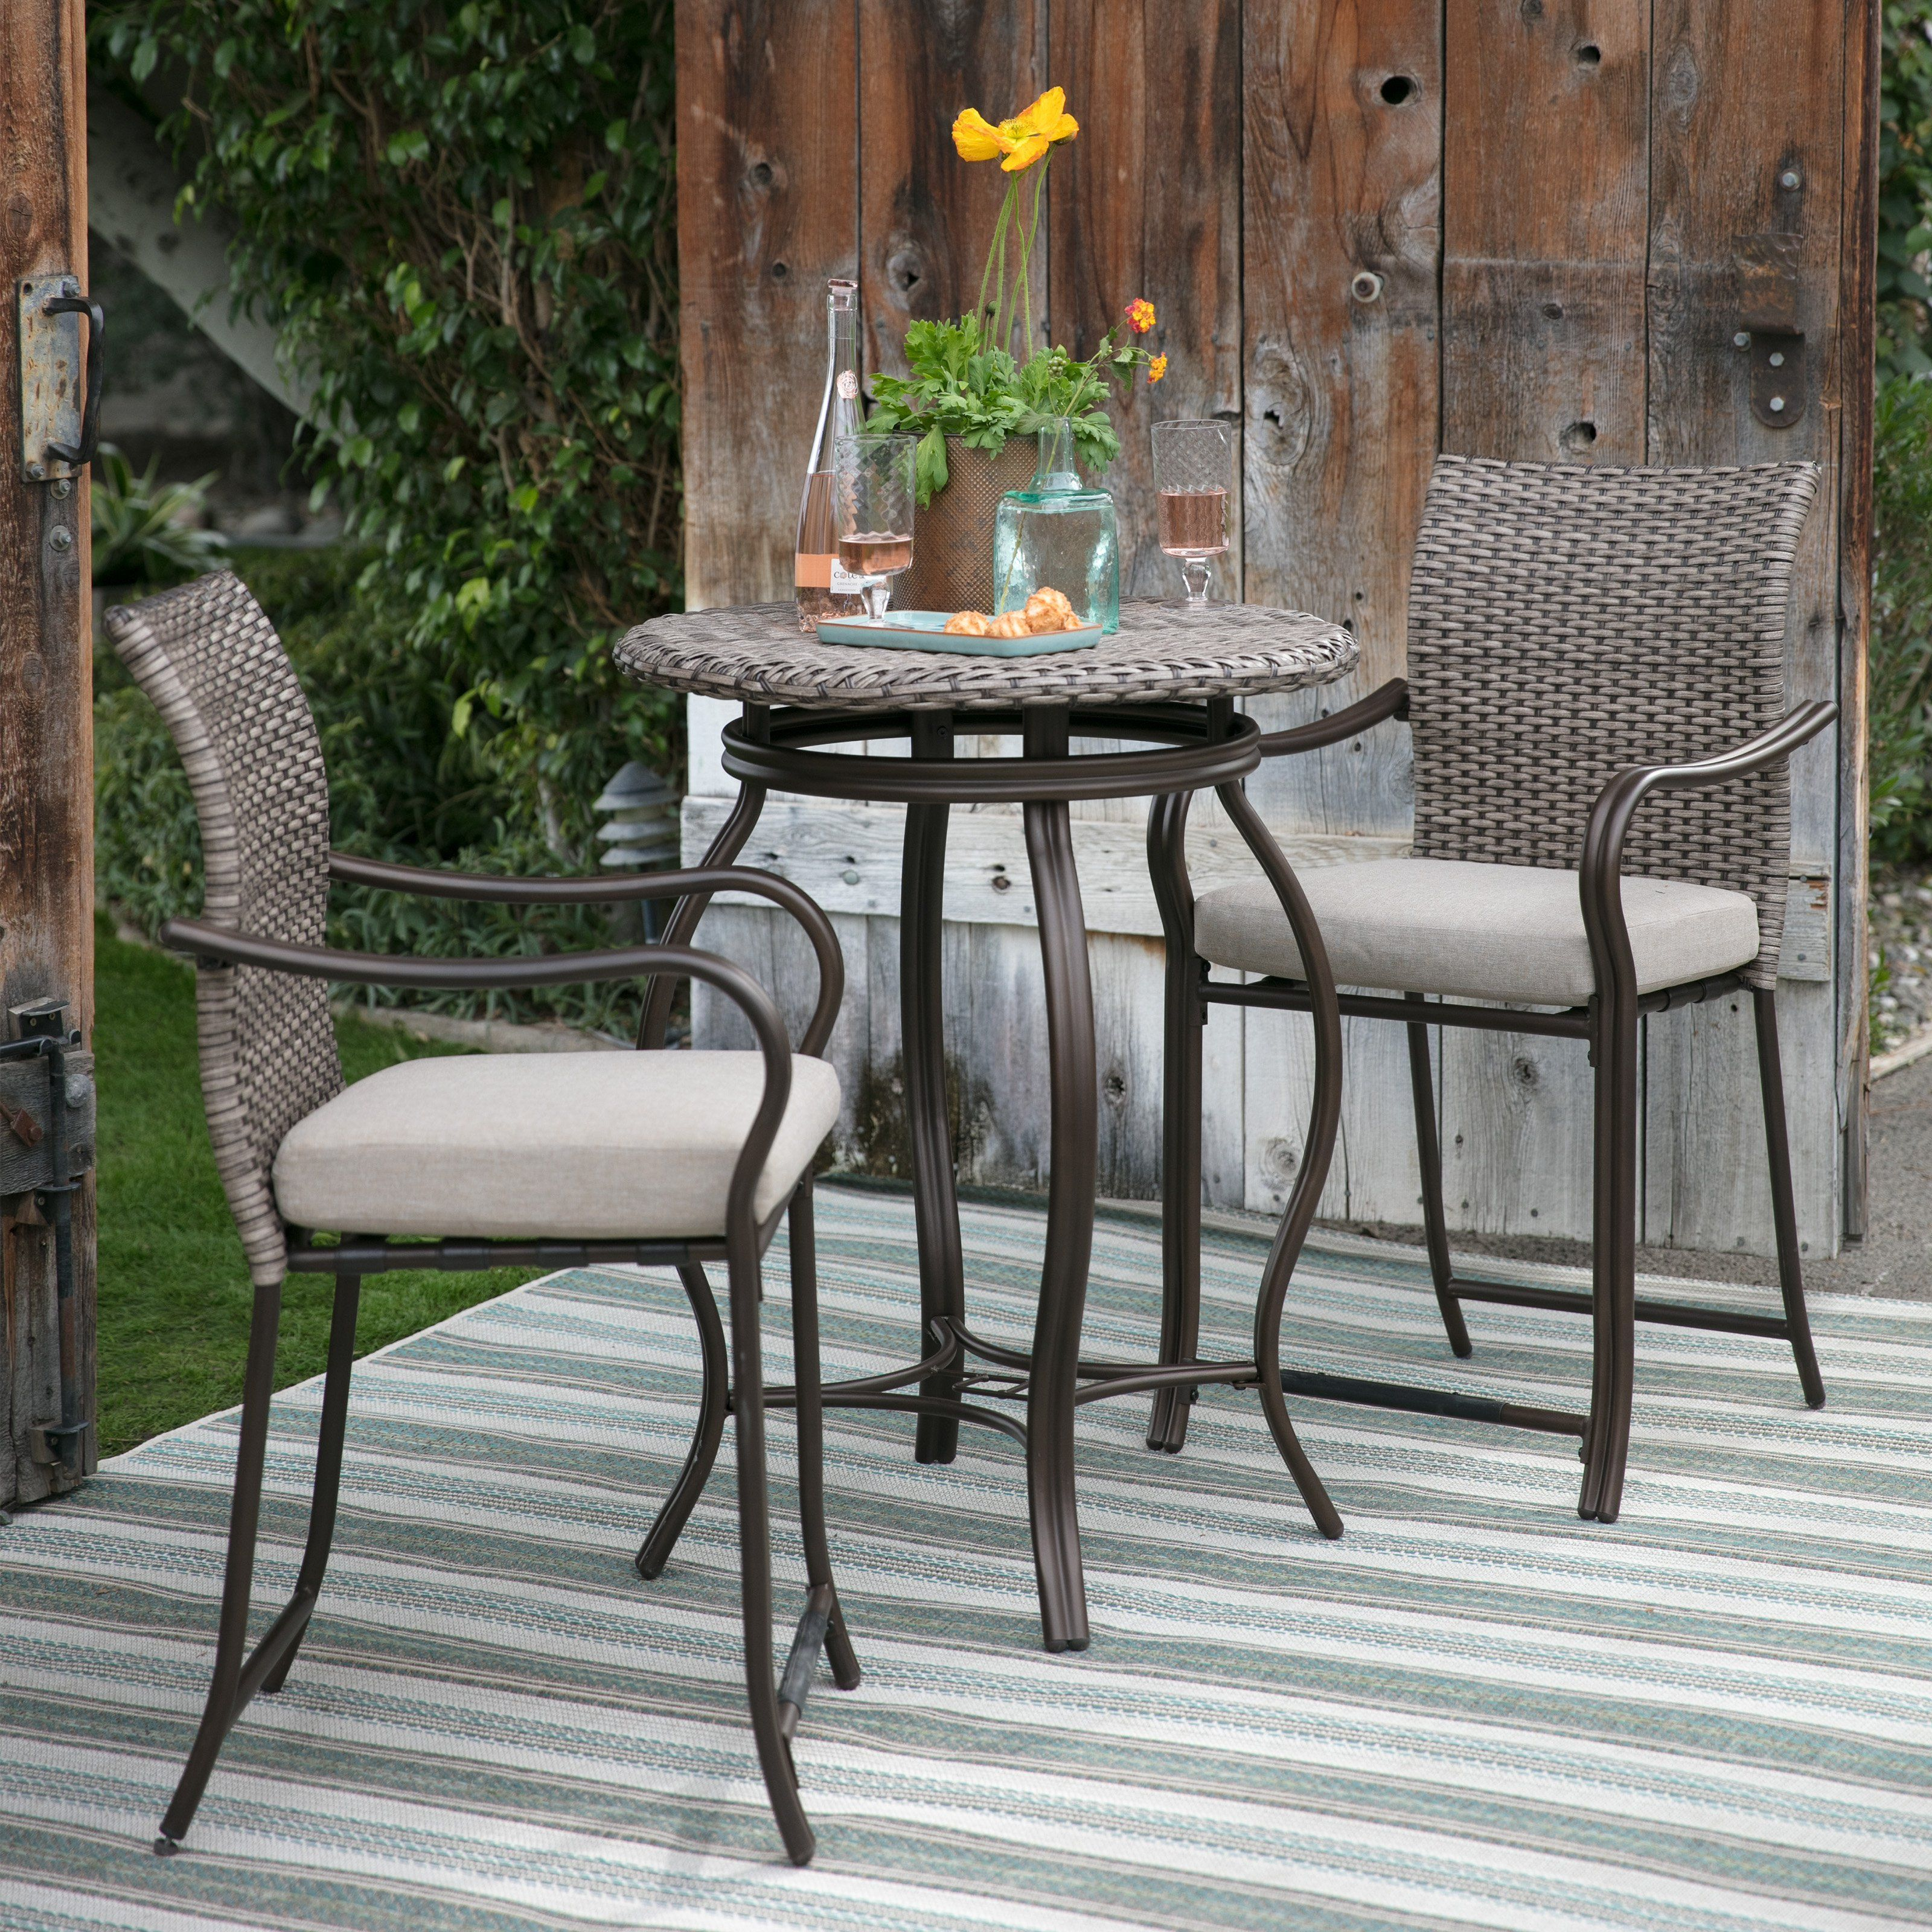 coral coast palma all weather wicker bar height bistro dining set rh pinterest com